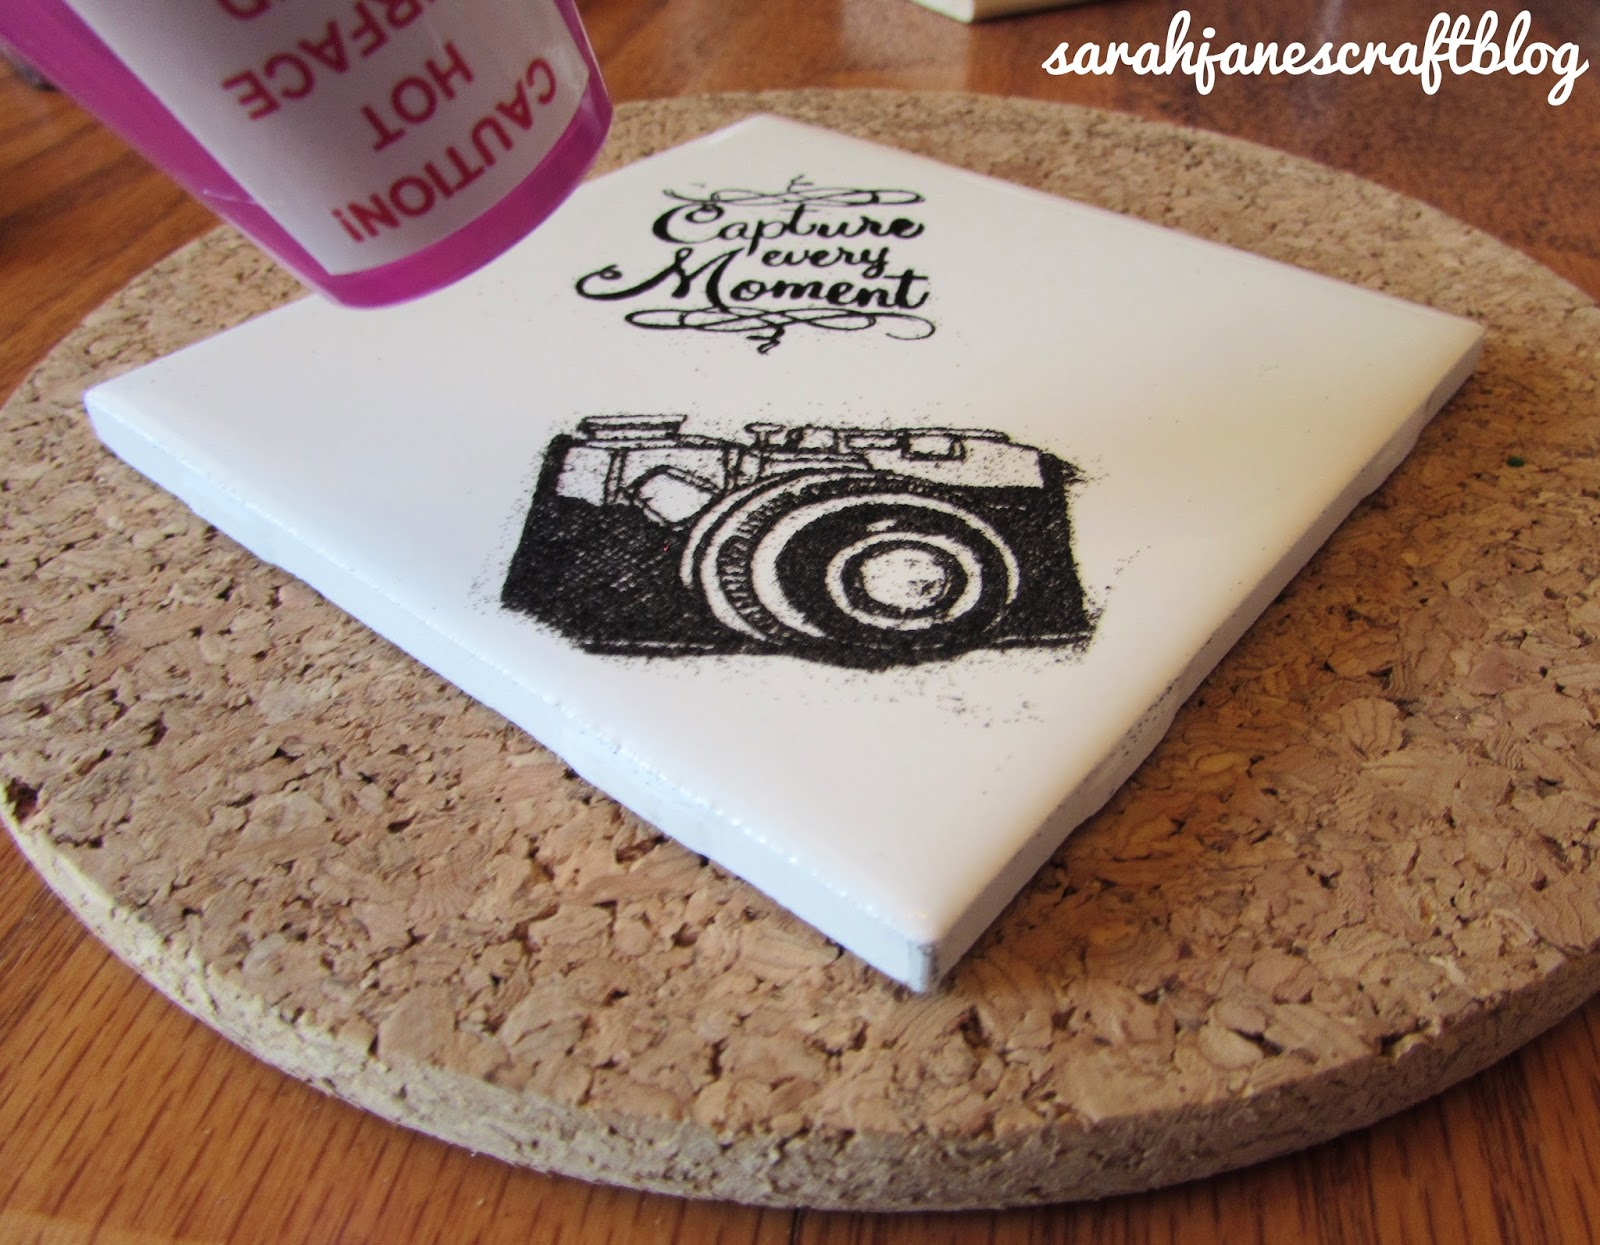 Sarah janes craft blog embossed ceramic tiles ink which is about the consistency of vaseline and works great for embossing powder it sticks like a dream and carefully stamped it onto the tile dailygadgetfo Image collections